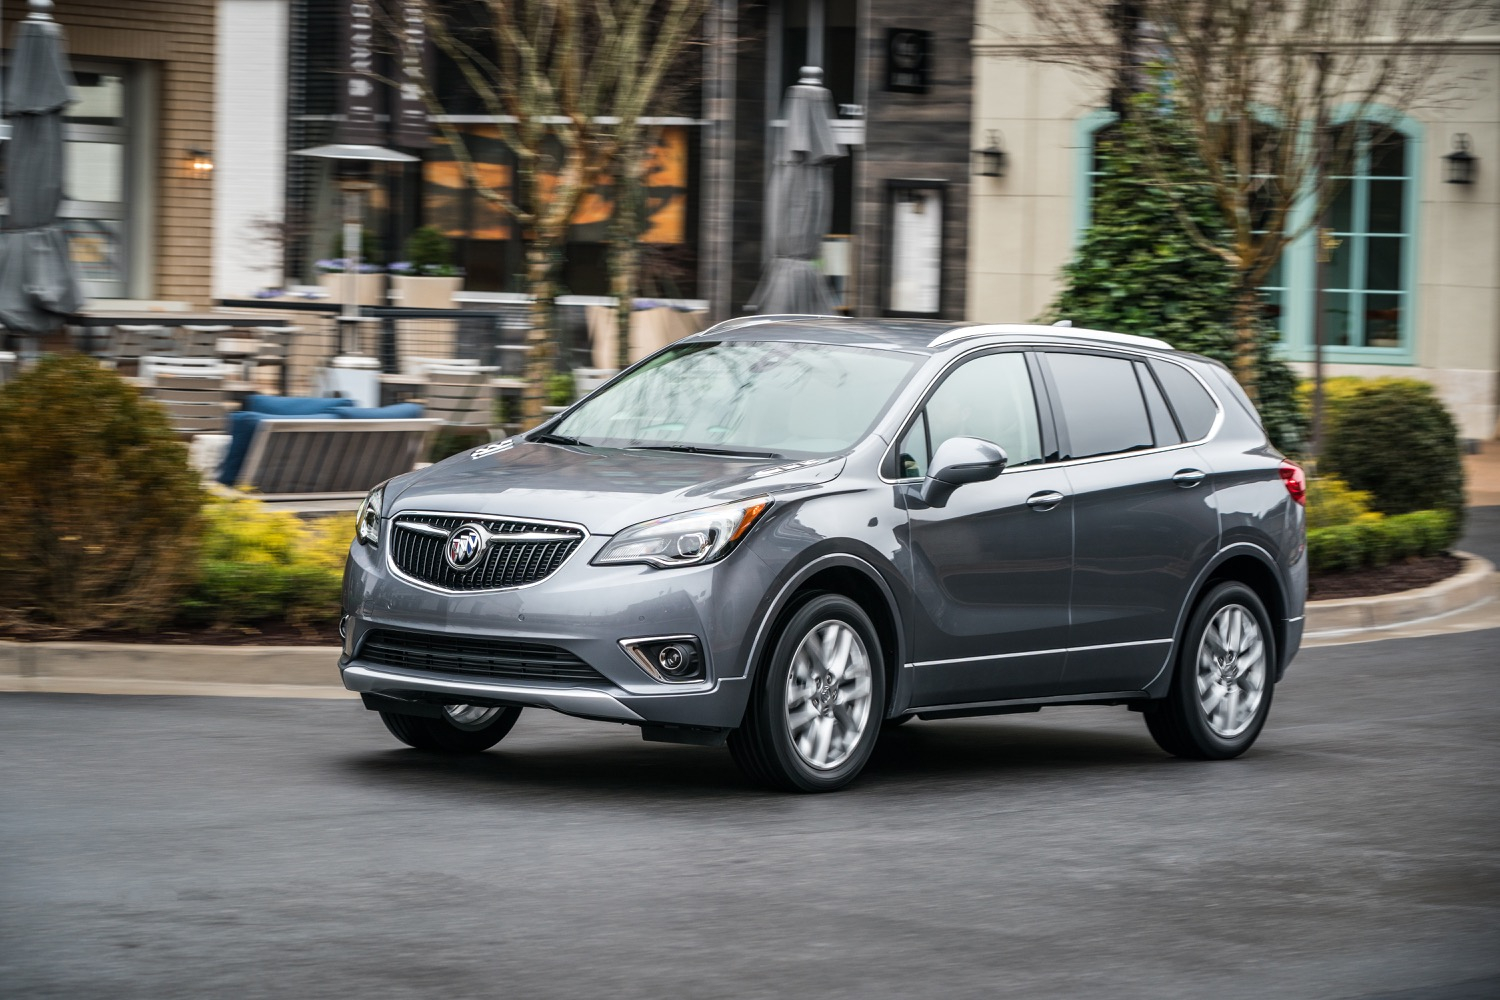 Buick Envision Selling Poorly In A Wildly Popular Segment 2022 Buick Envision Build, Lease, Cost